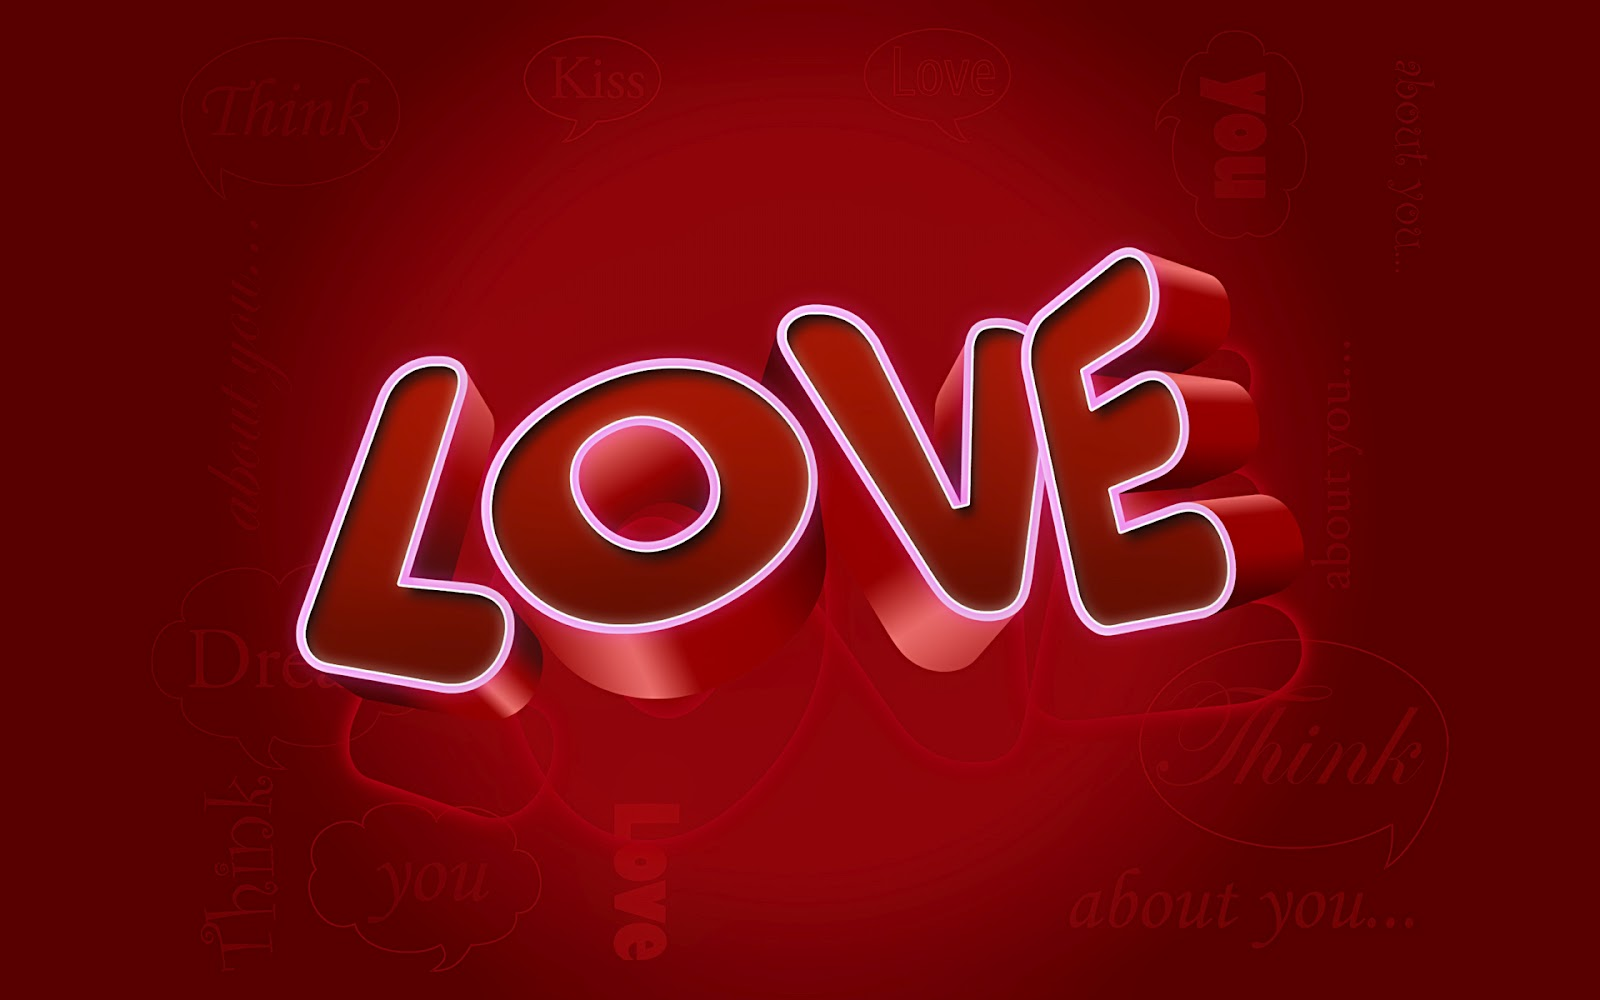 Love Wallpapers Jpg : Wallpaper Desk : I love you wallpaper, i love you wallpapersWallpaper Desk